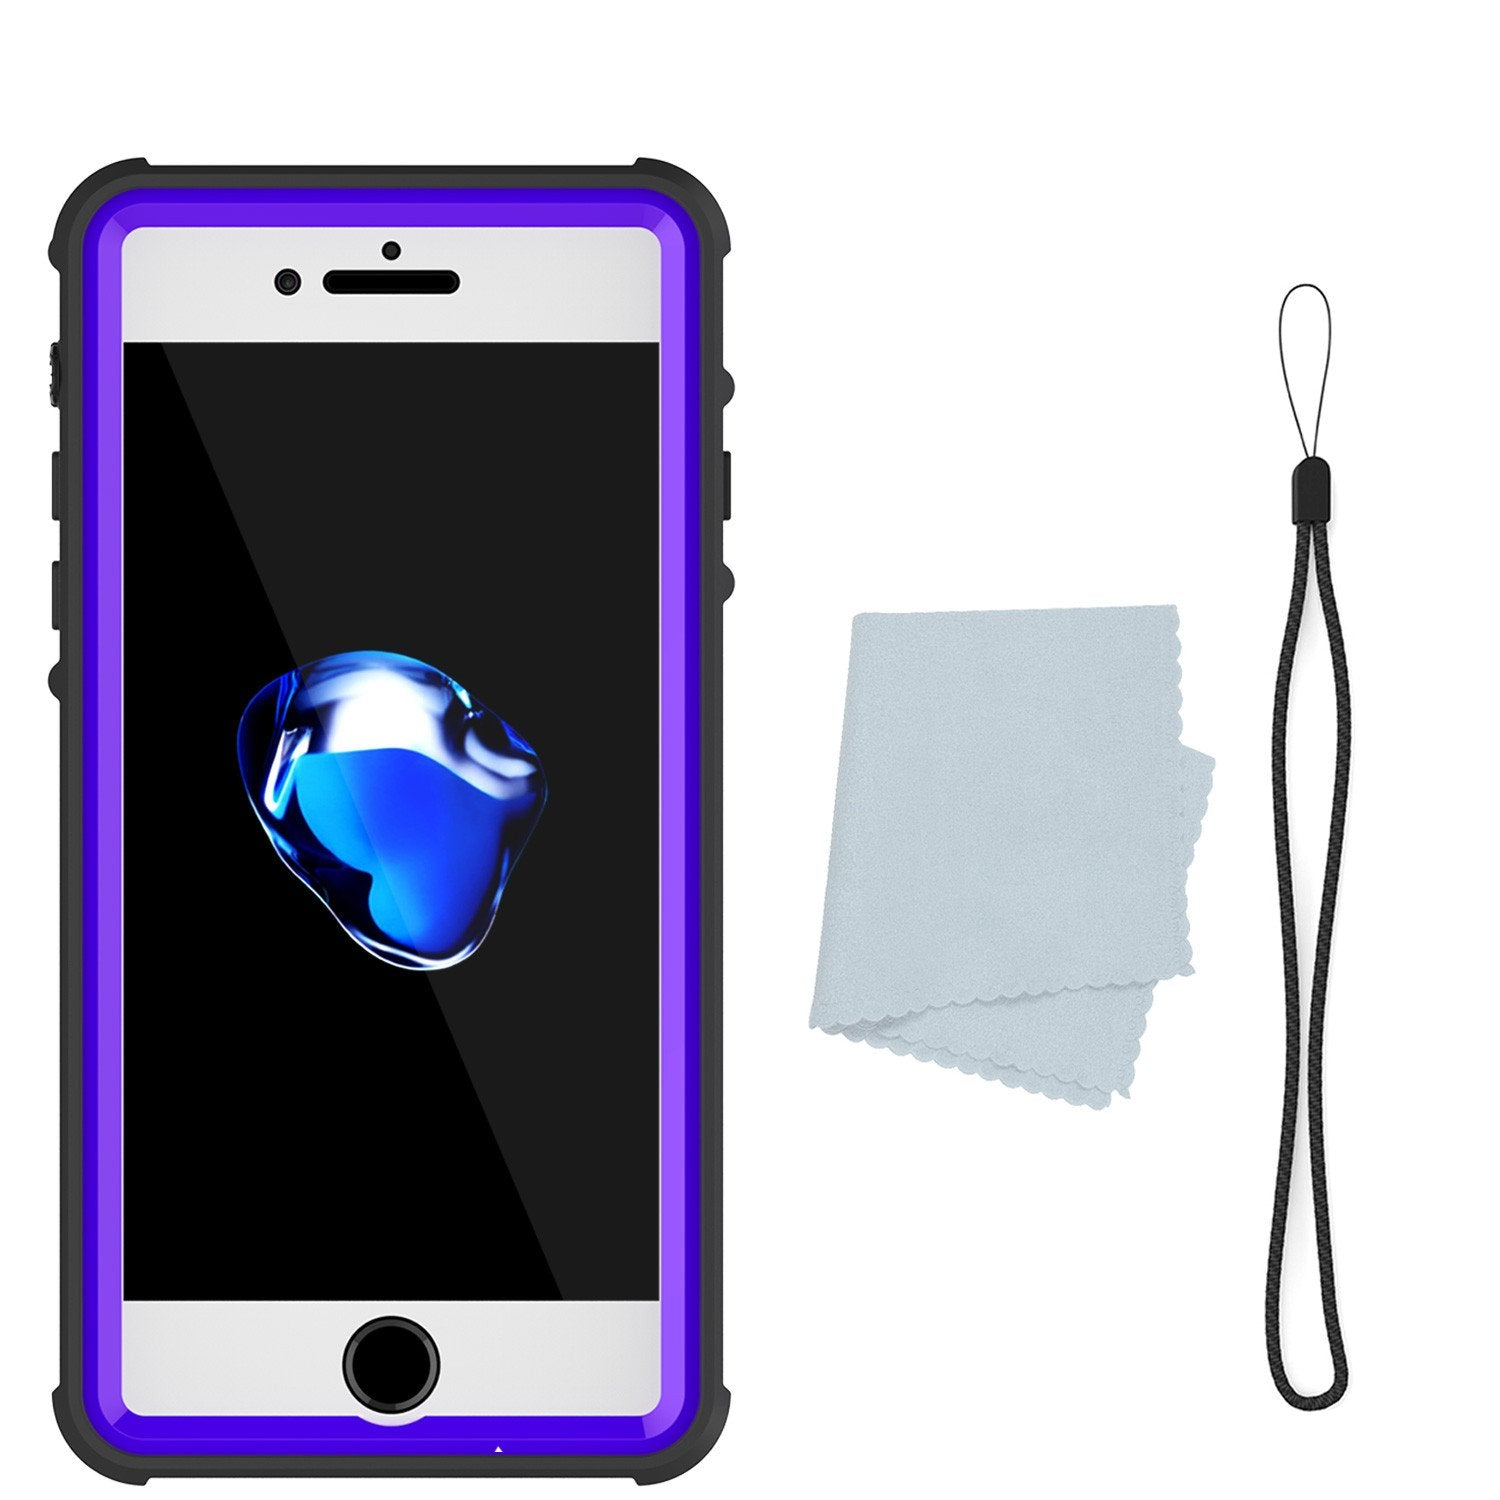 Apple iPhone 8 Waterproof Case, PUNKcase CRYSTAL Purple W/ Attached Screen Protector  | Warranty